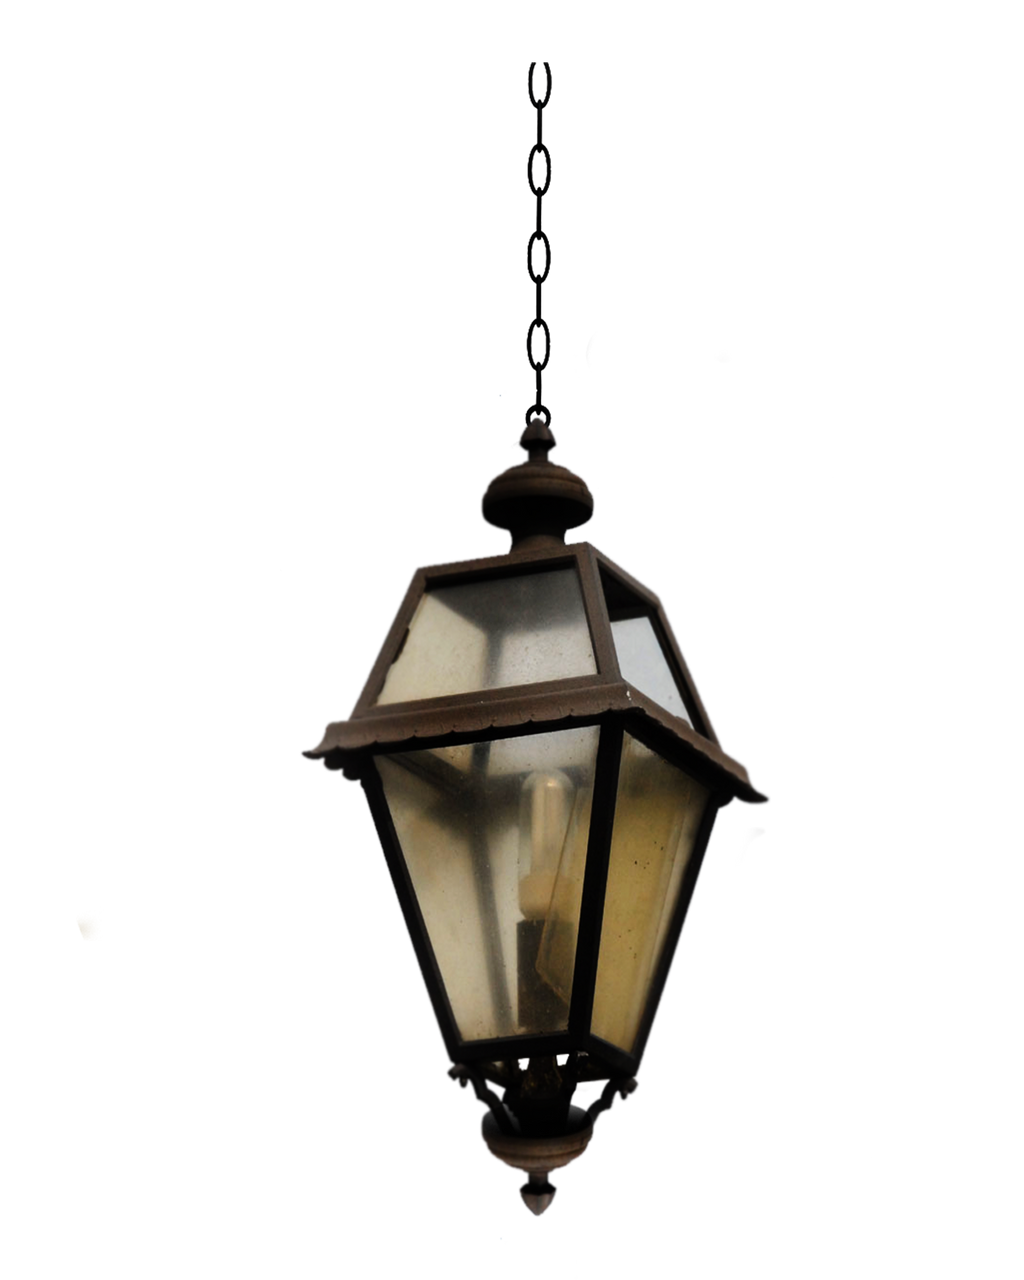 Hanging Lamp Png by Moonglowlilly on DeviantArt for House Light Png  156eri